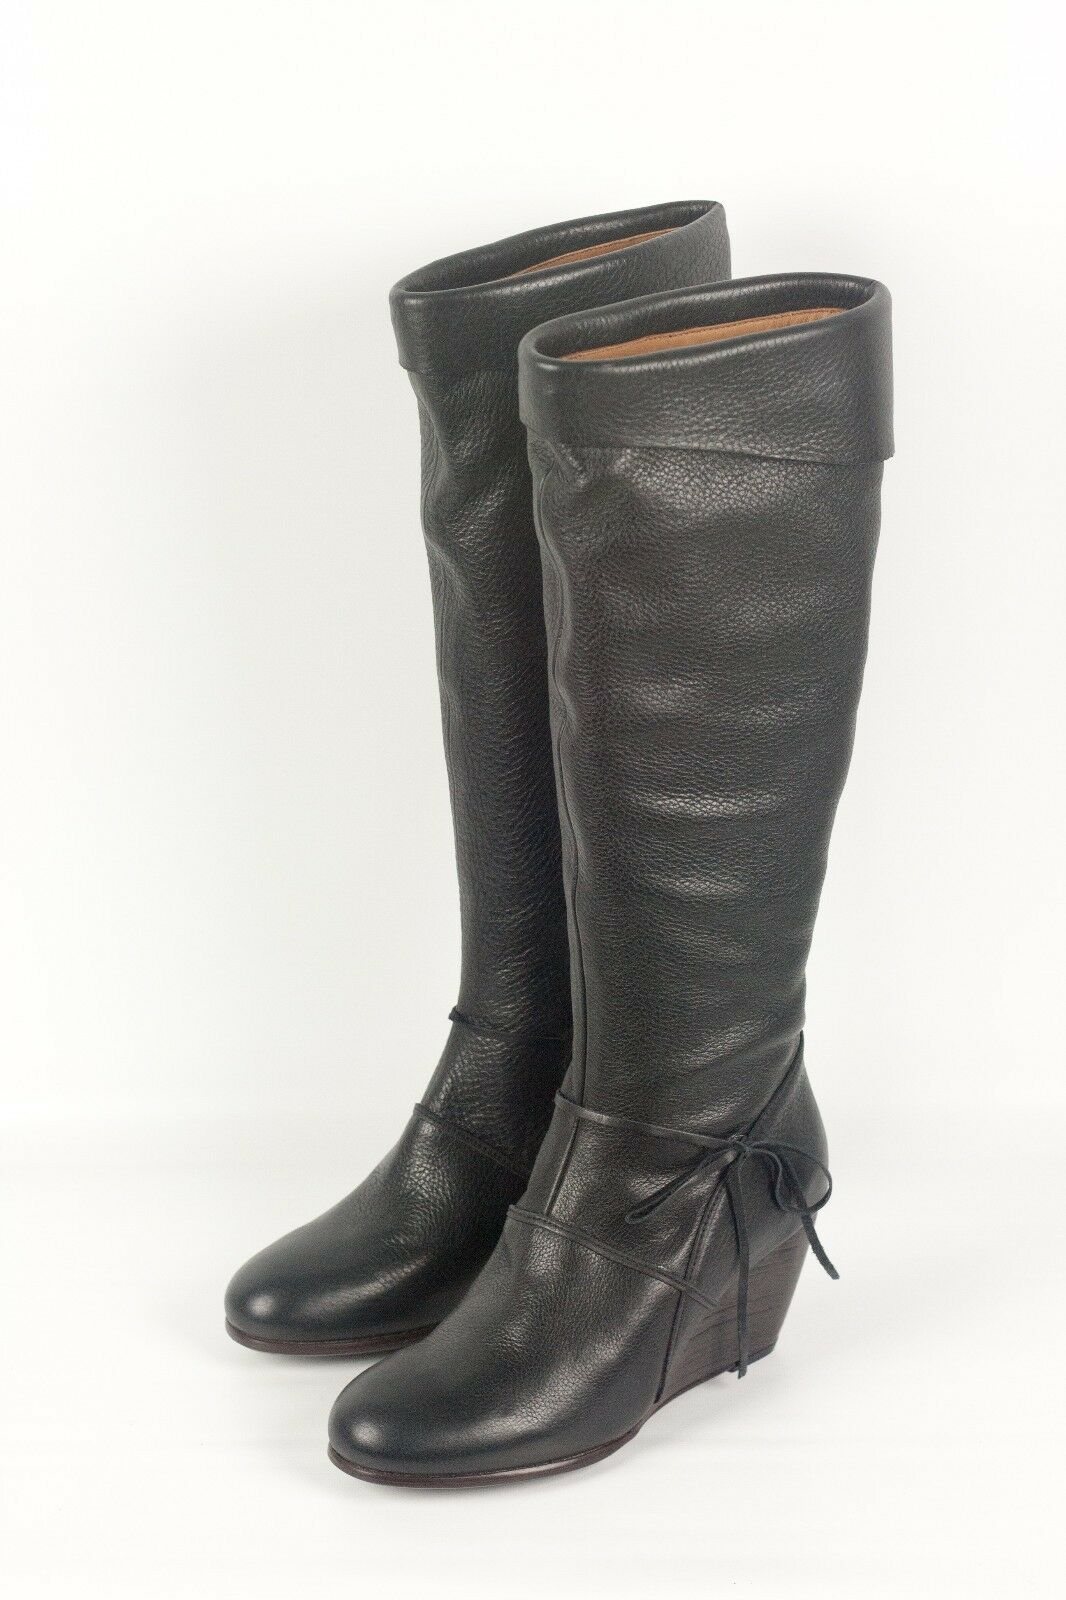 NEW IN BOX  525 Coclico West Black Leather Wedge Boots Size 37 GORGEOUS